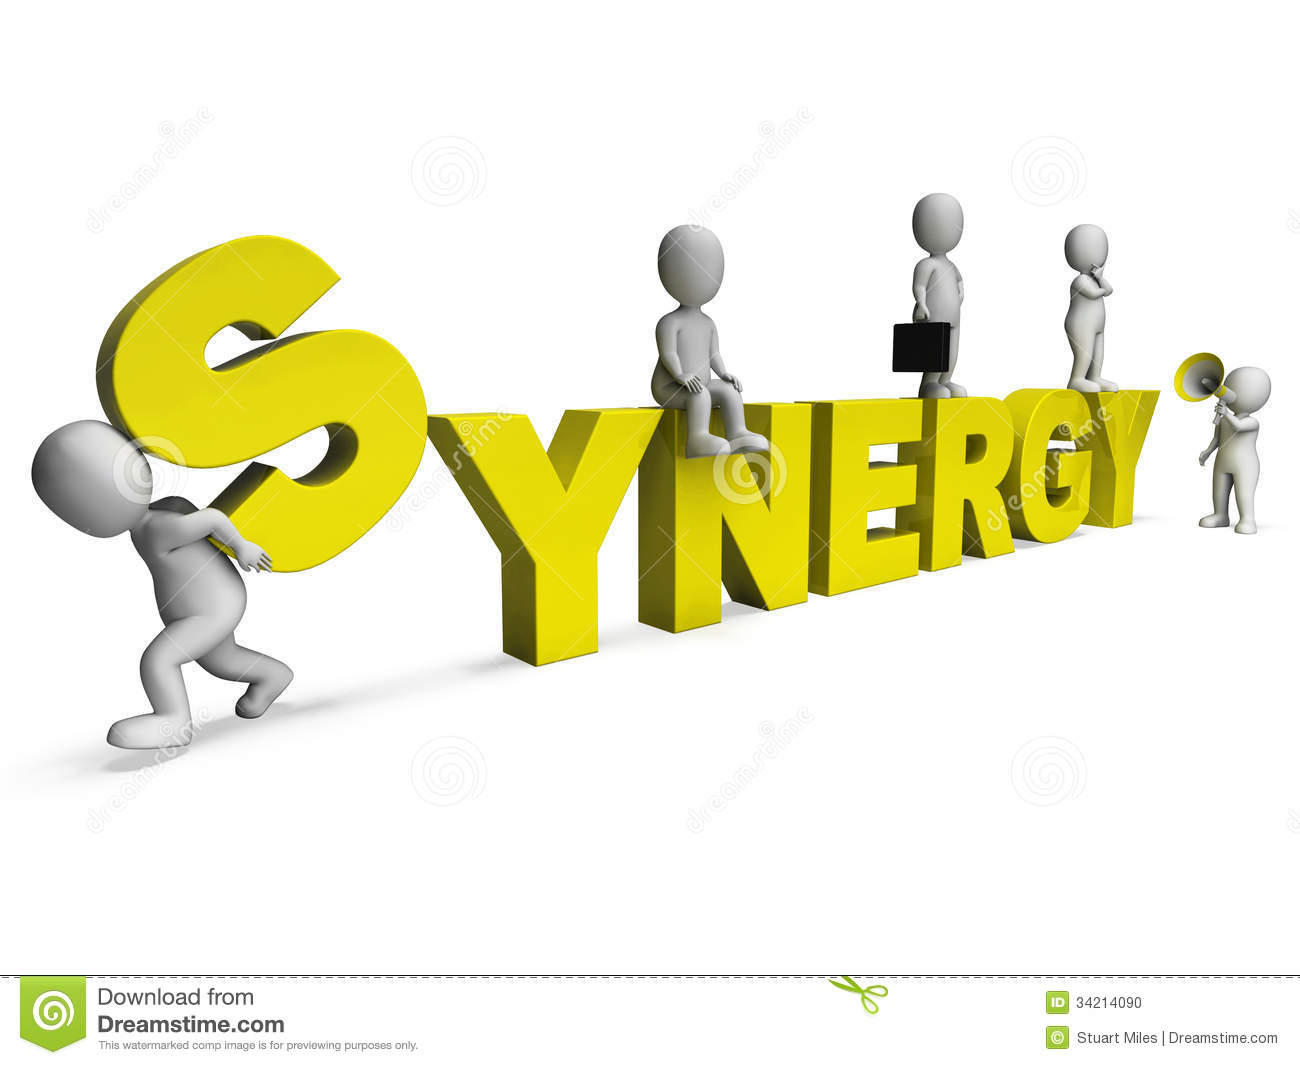 Dealer For The People >> Synergy - Teamwork People Partner For Combined Strength Royalty-Free Stock Photo | CartoonDealer ...